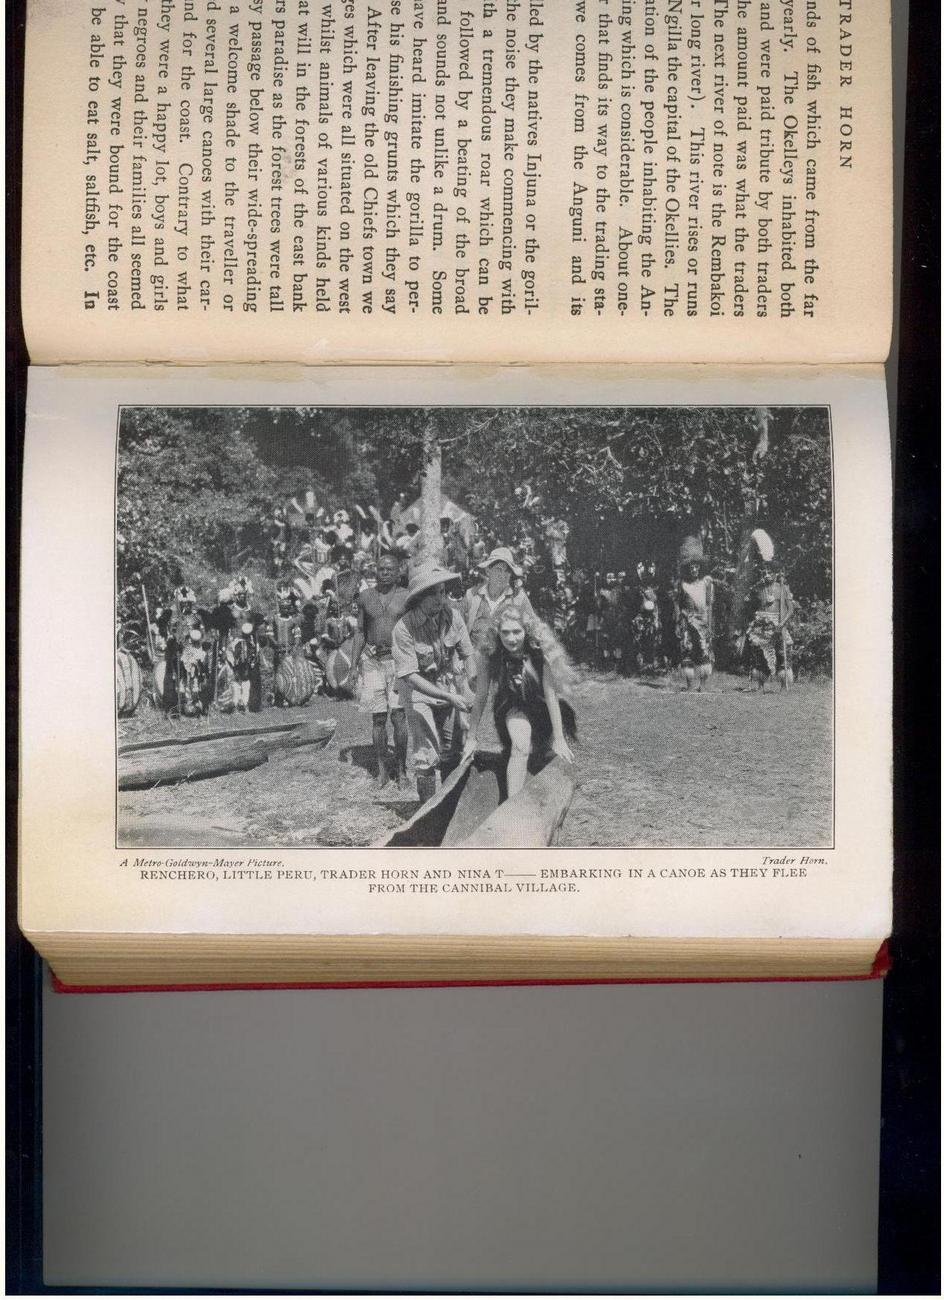 TRADER HORN - 1931 MGM movie edition -  Africa